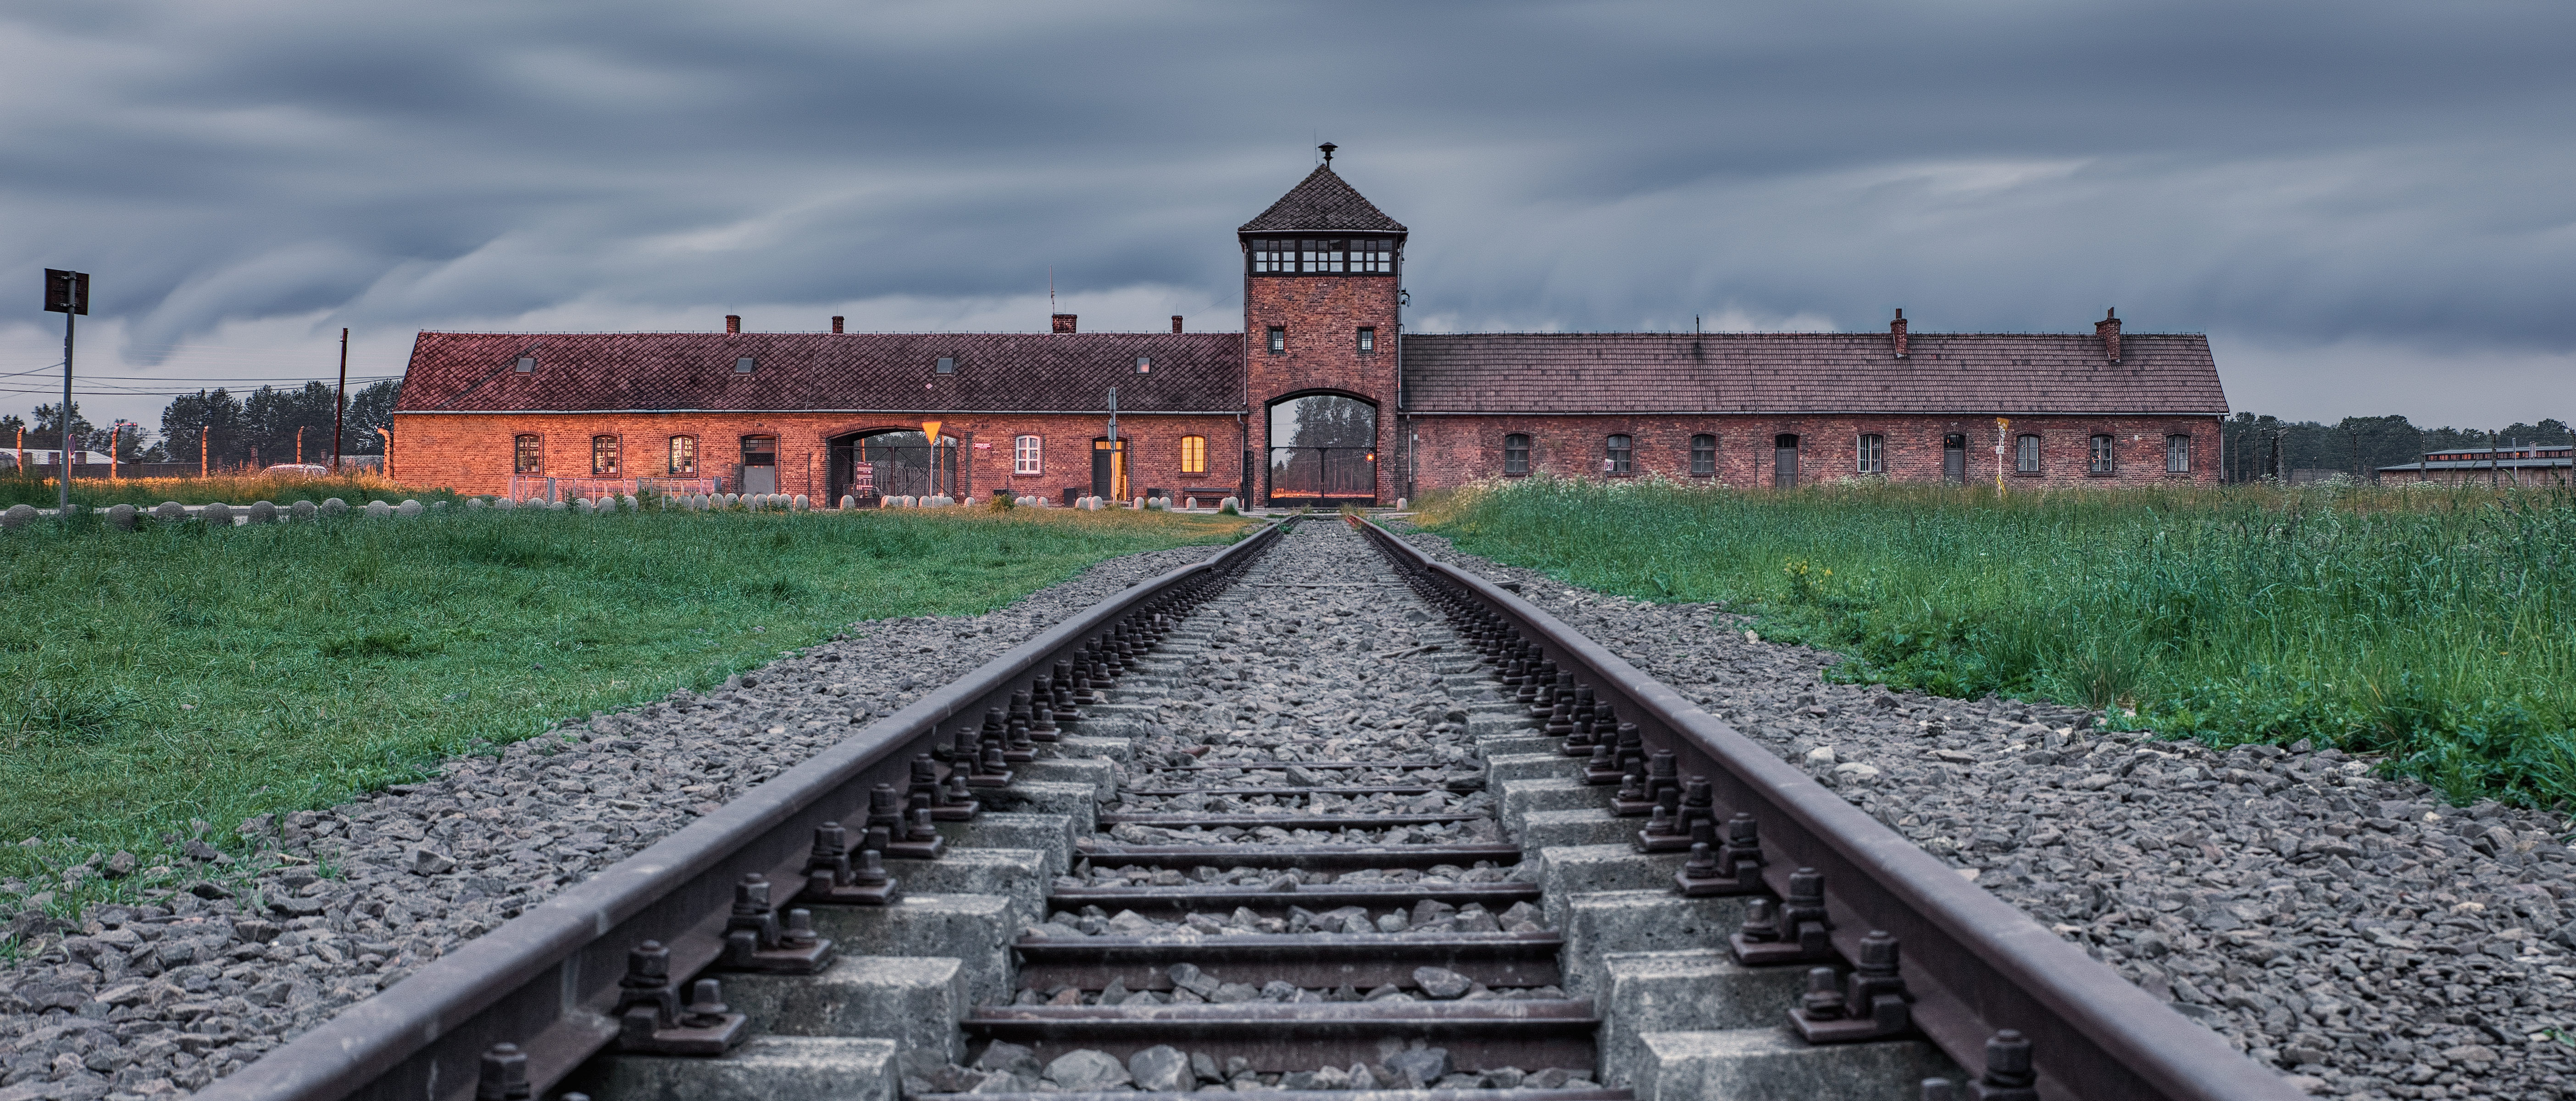 96-Year-Old Woman Liberated From Auschwitz Death March To Reportedly Meet Family Of Soldier Who Helped Save Her